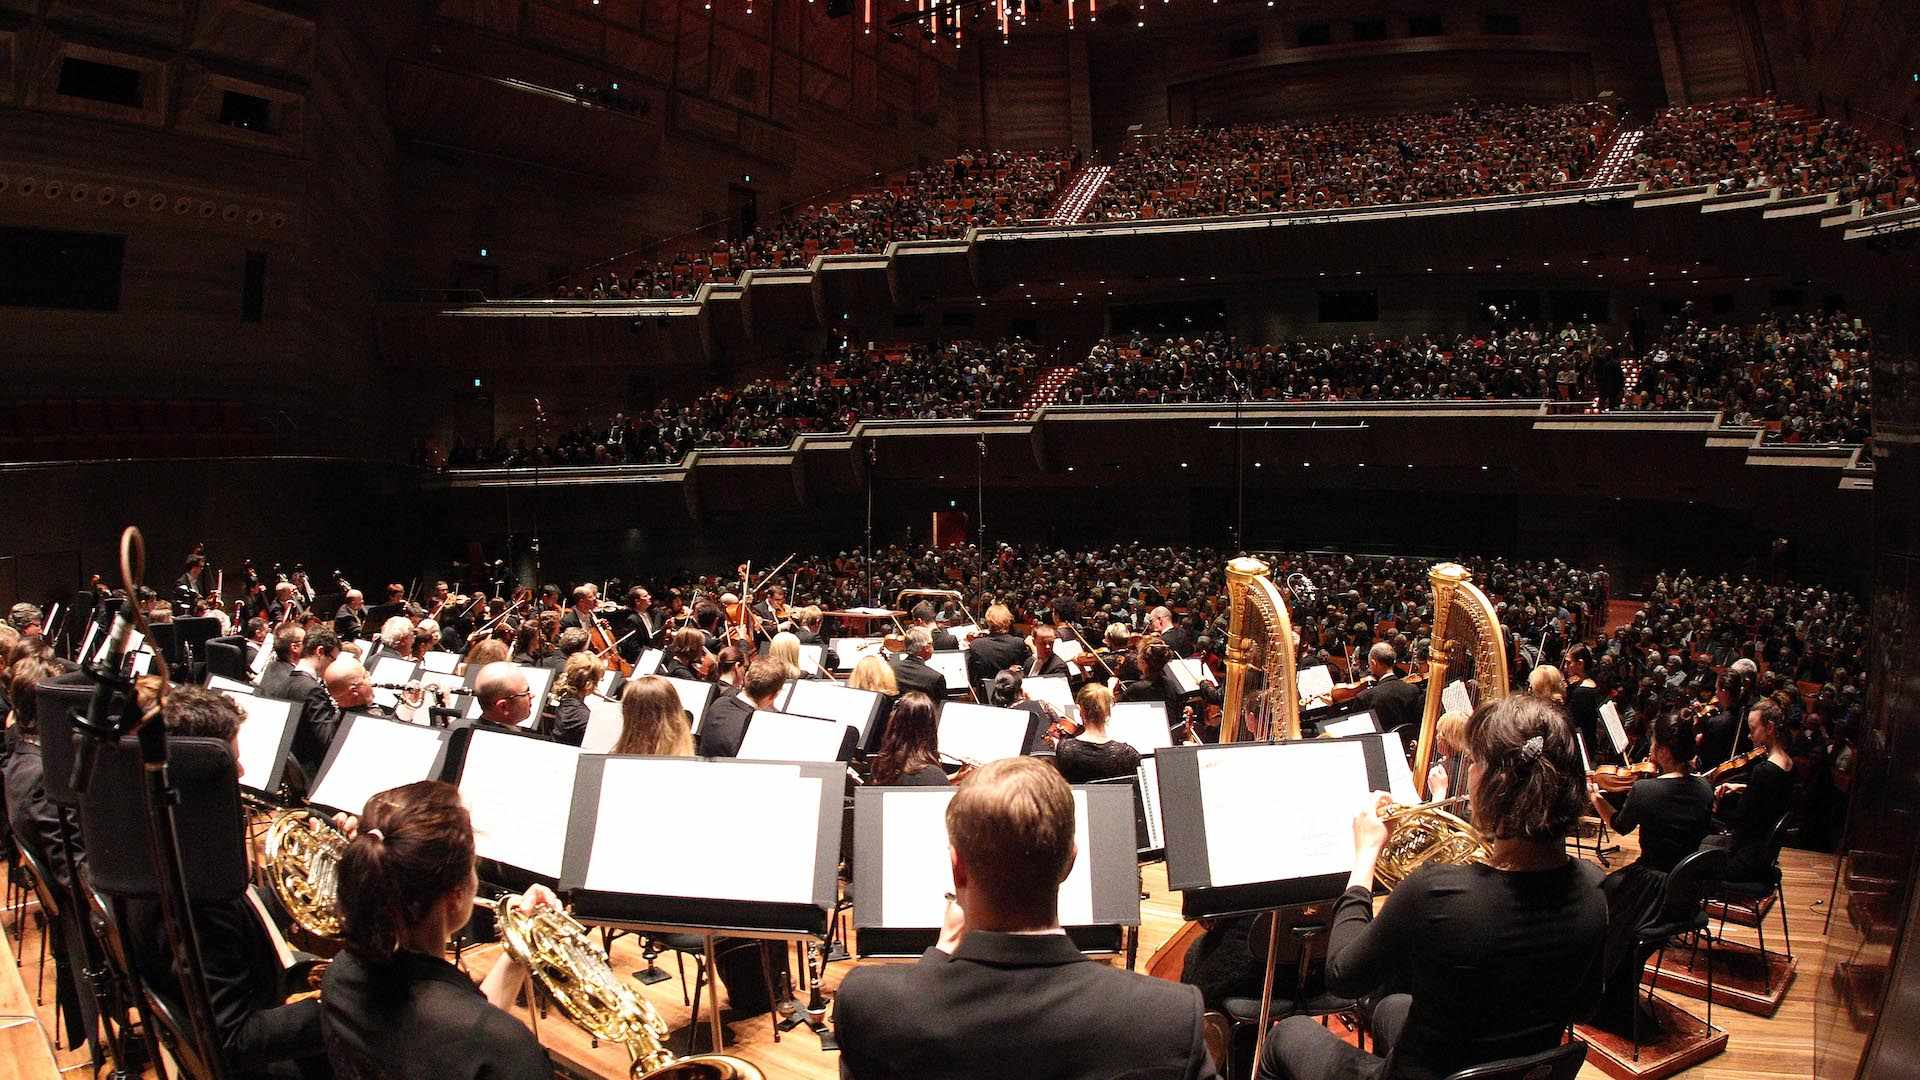 Melbourne Symphony Orchestra Is Now Live-Streaming Concerts for Free